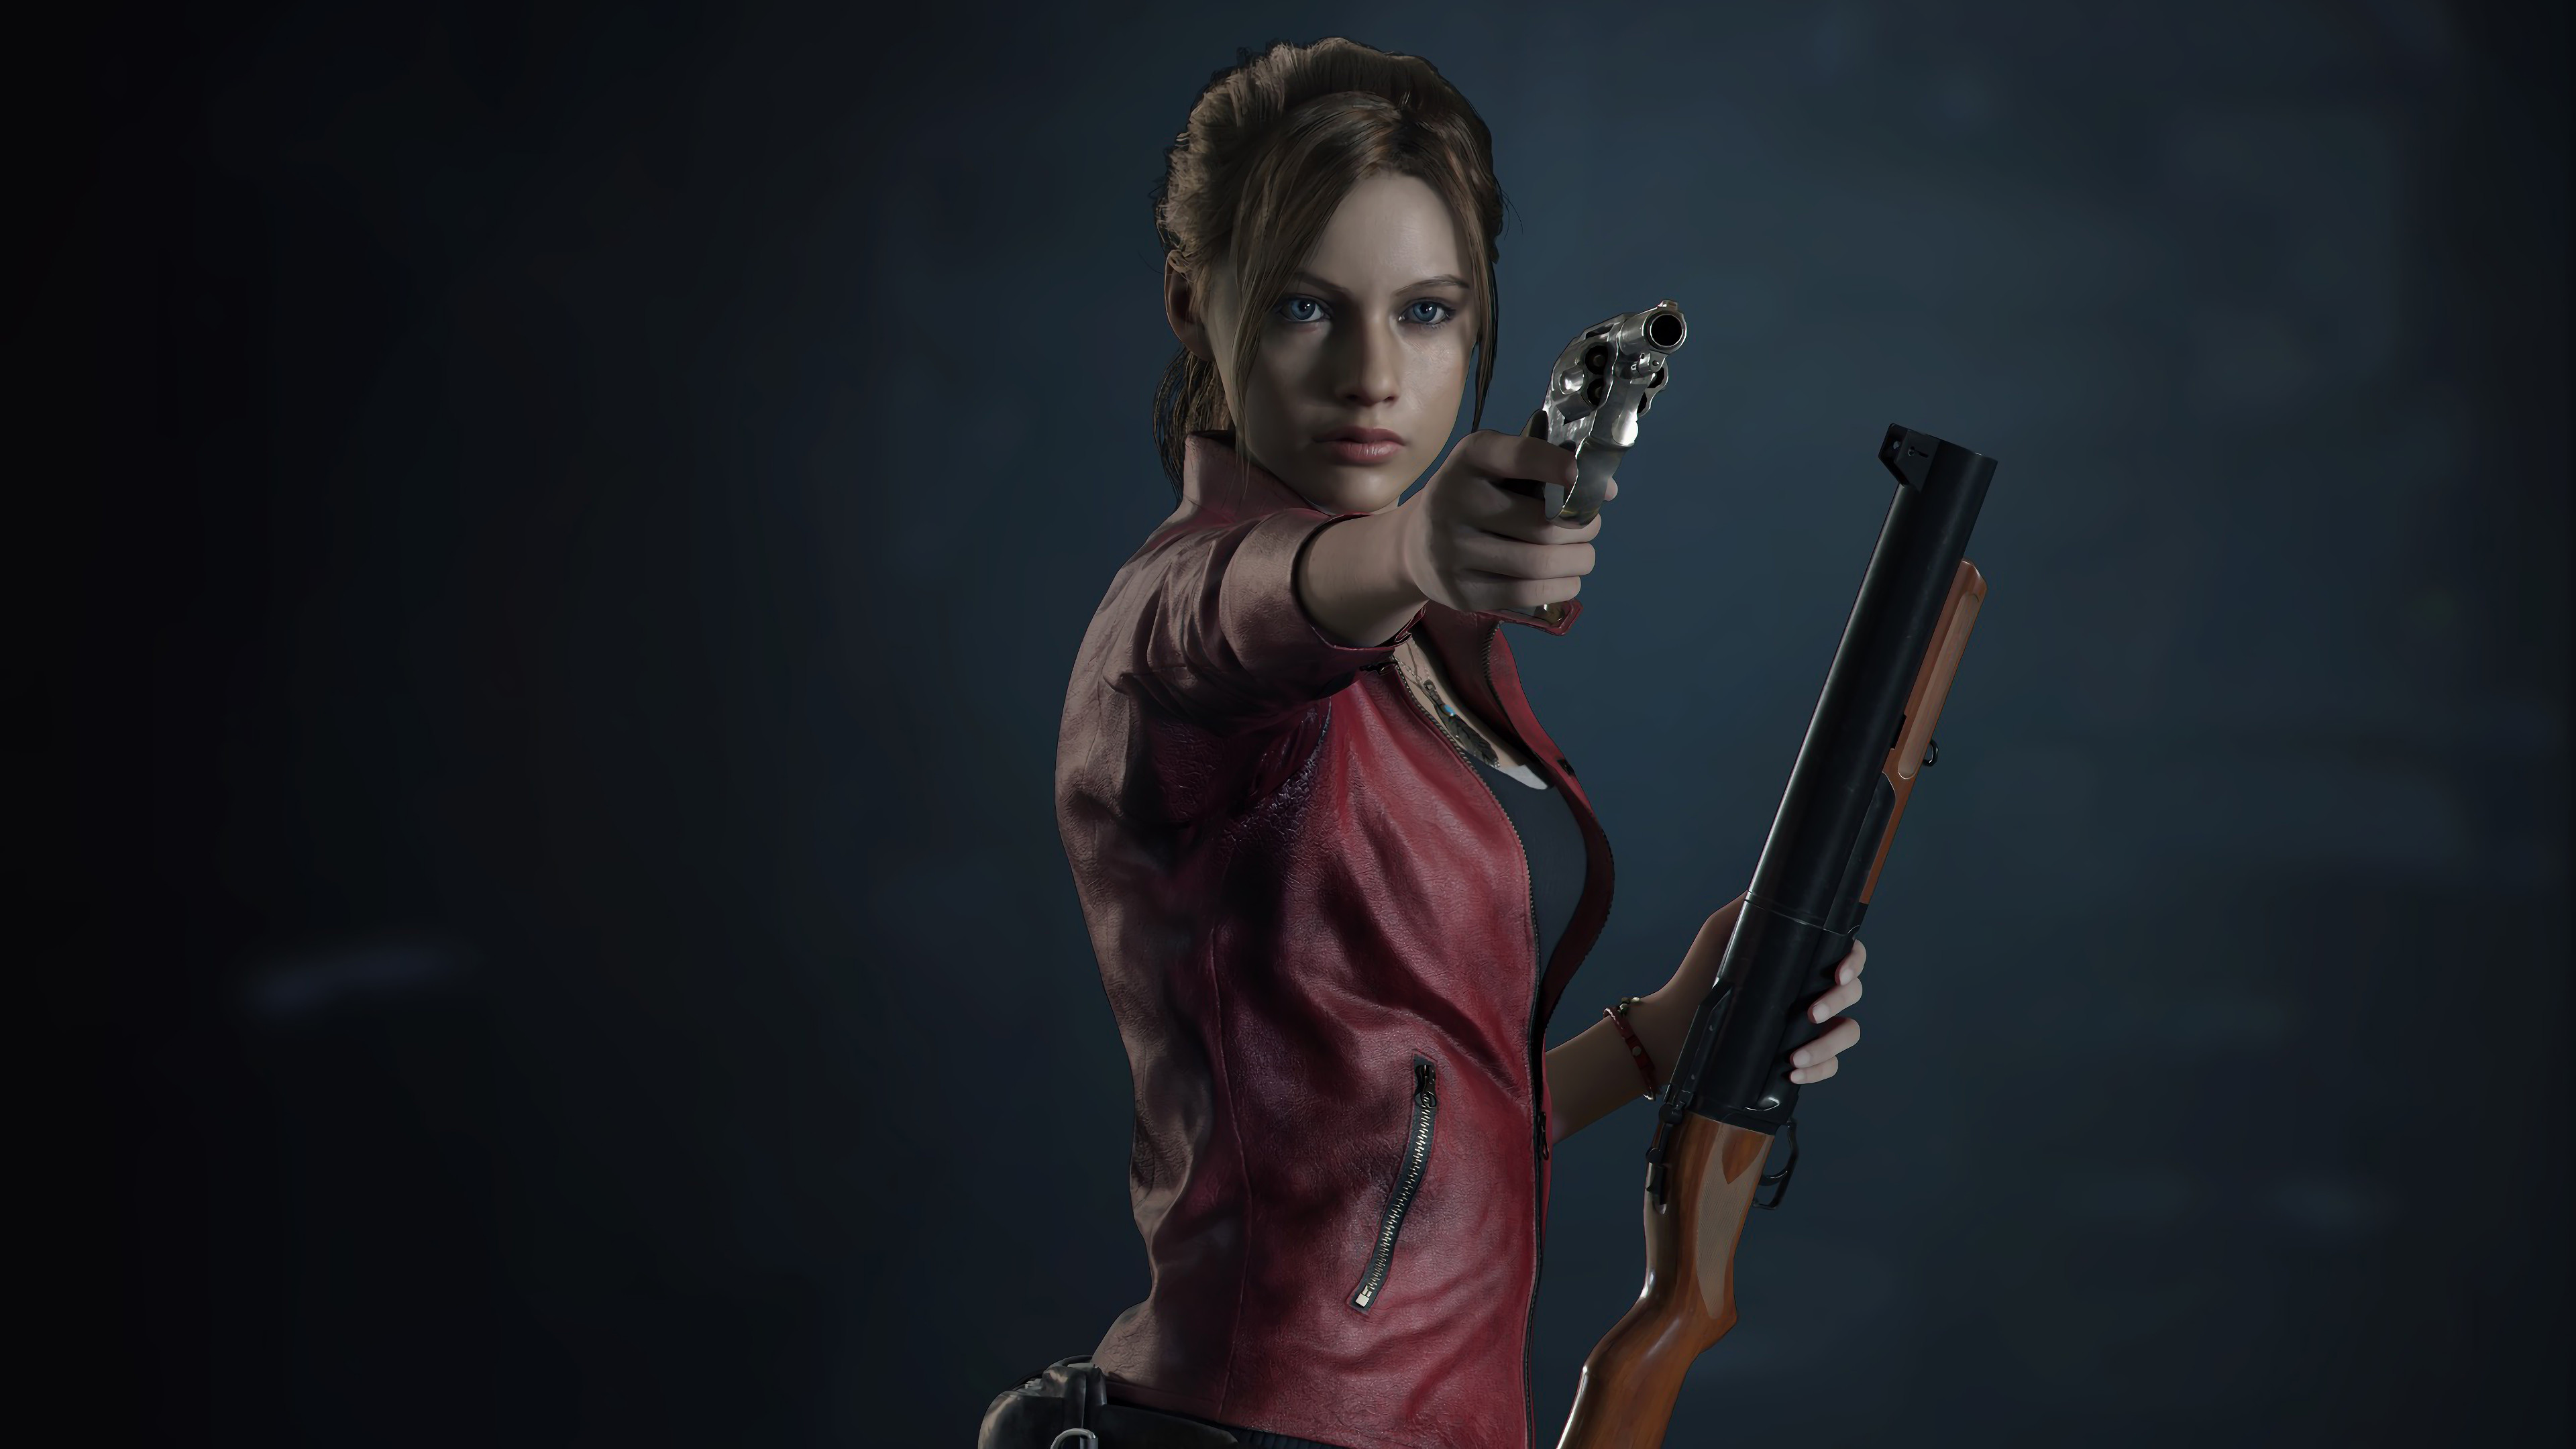 Resident Evil Claire Redfield Wallpaper (73+ images)